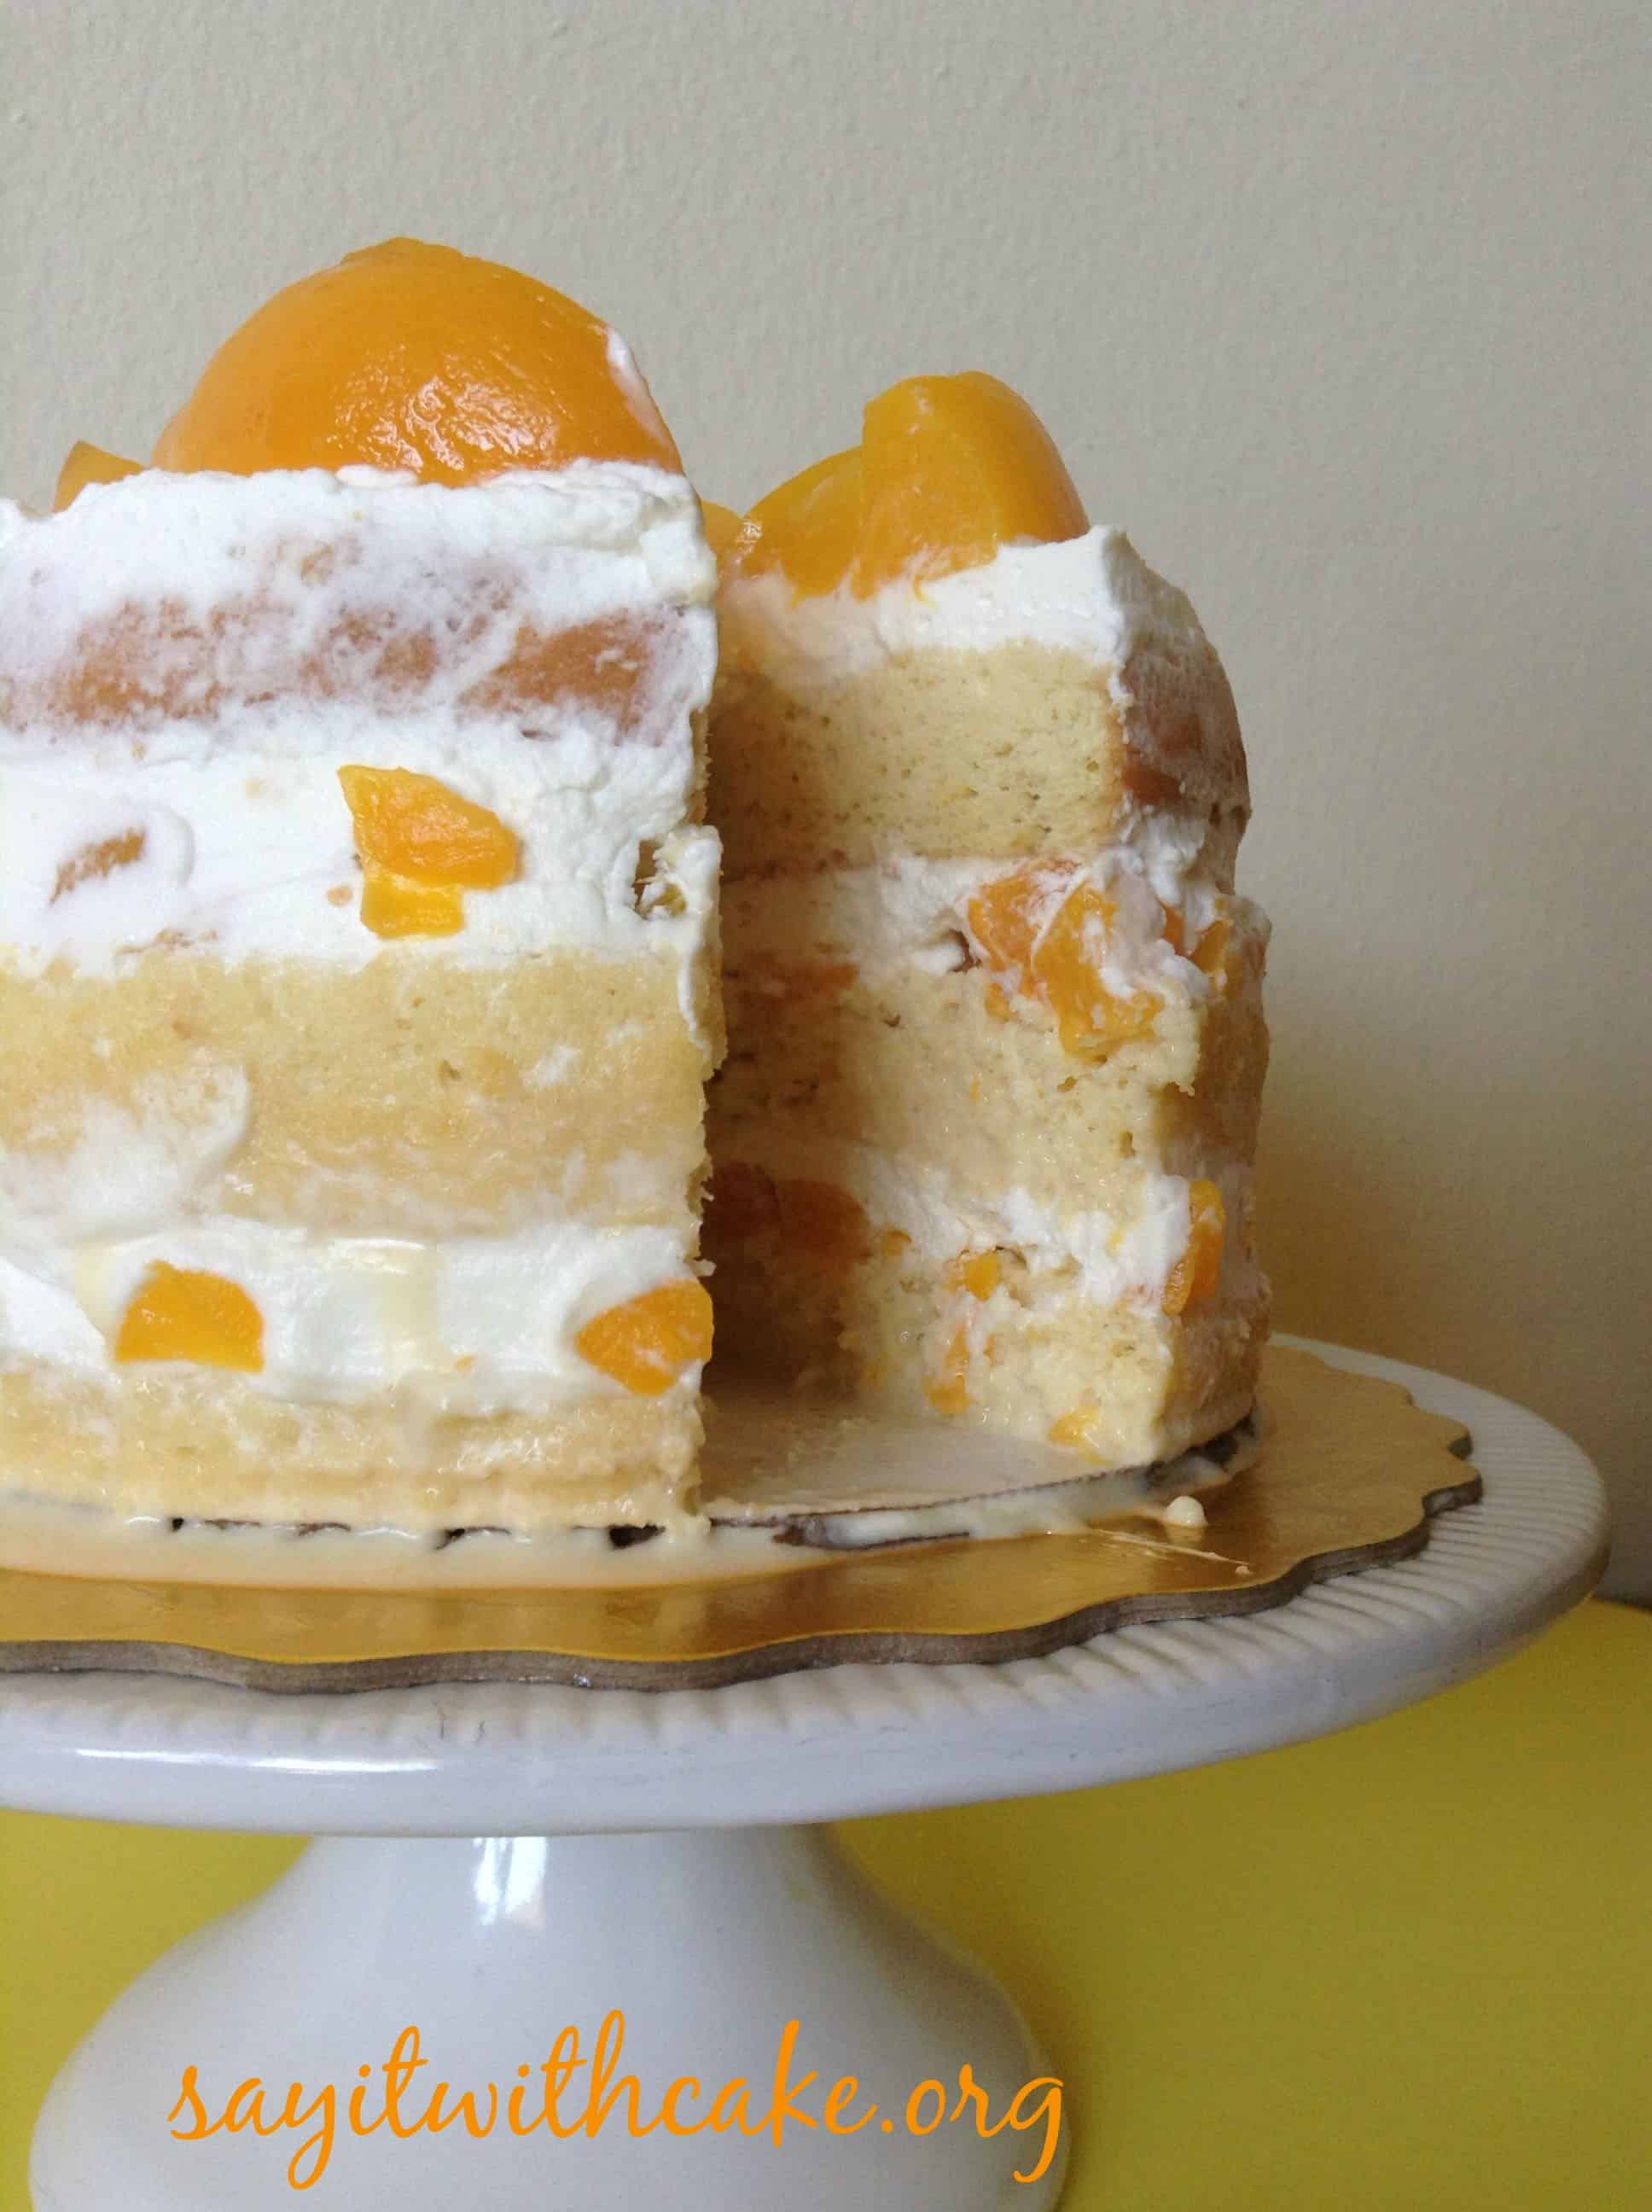 Lyered tres leches cake with peaches and cream filling